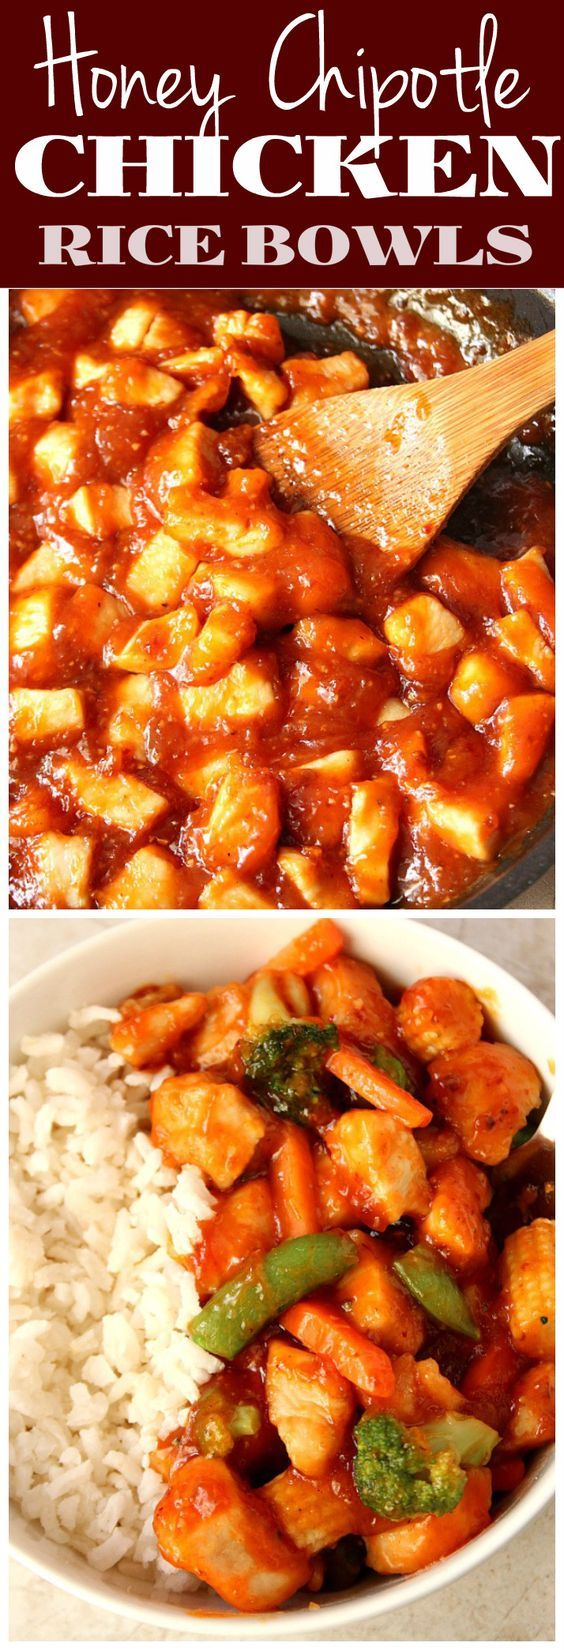 Honey Chipotle Chicken Rice Bowls Recipe - sweet and spicy chicken ...